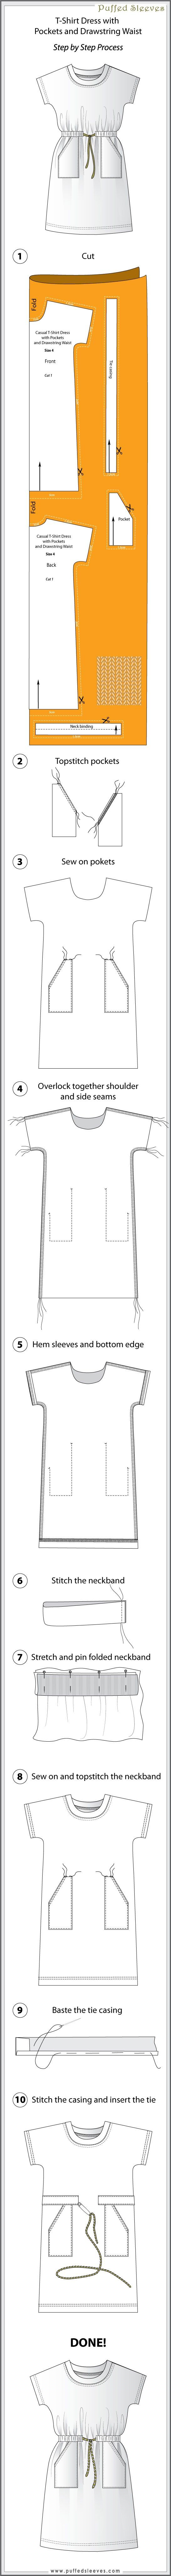 Easy to make casual dress with step-by step instructions. Printable pattern.